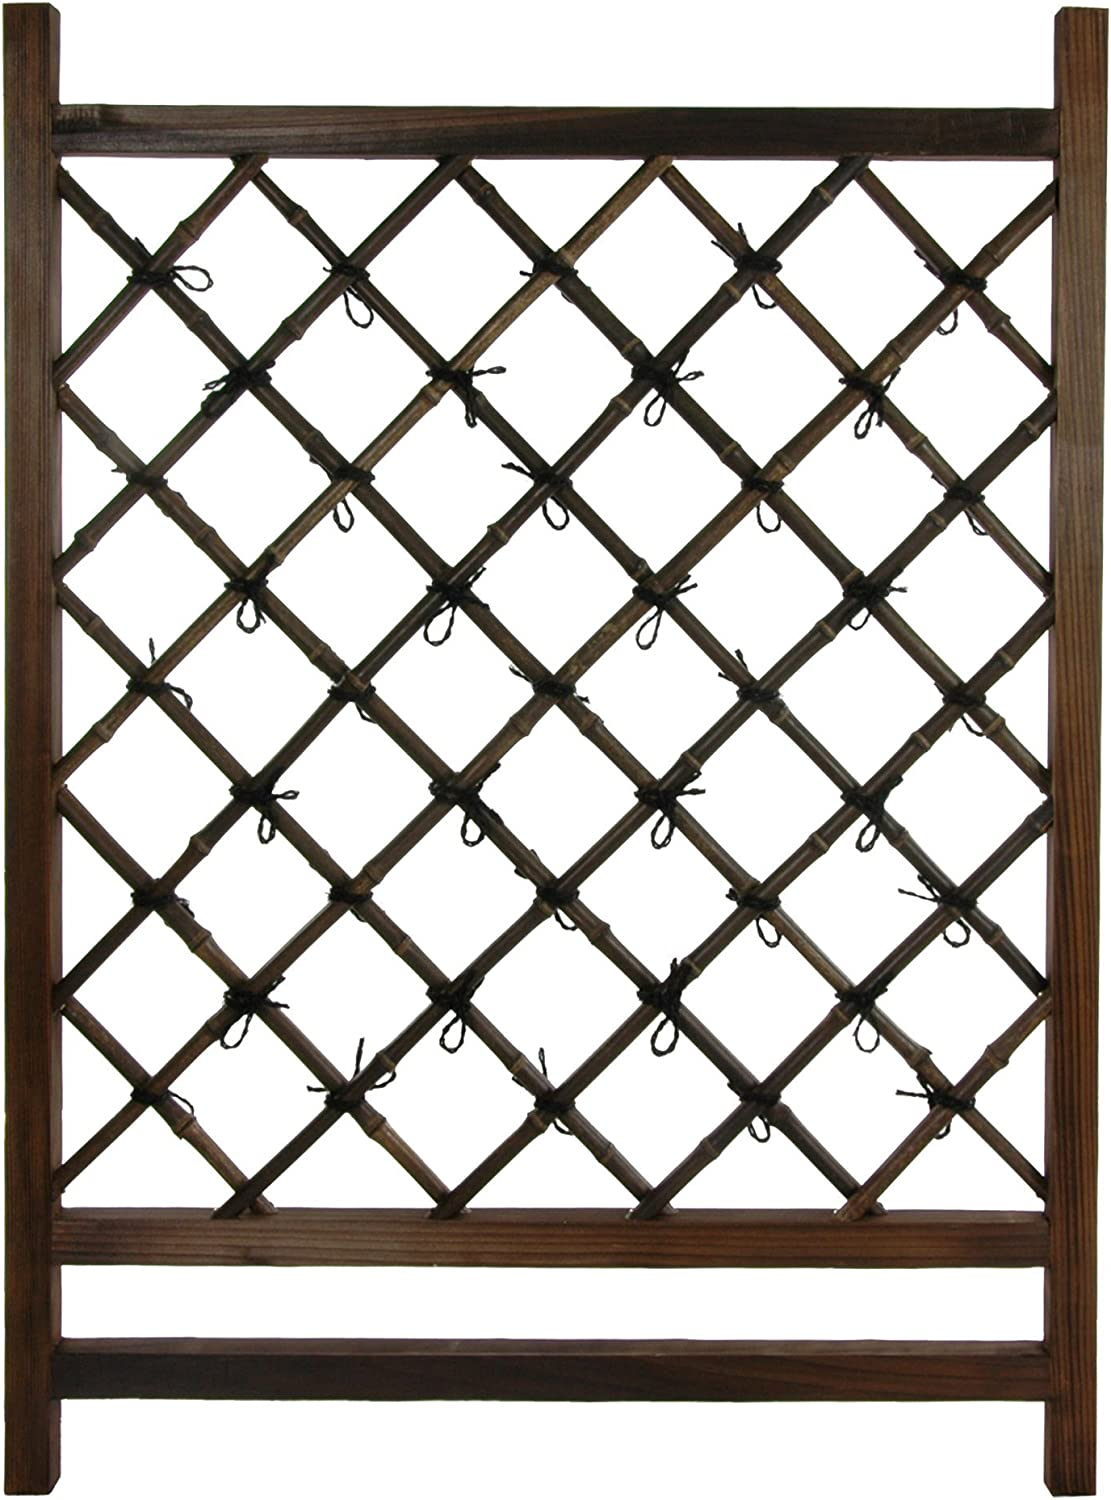 Oriental Furniture Japanese Wood Bamboo Section Fence Low price 67% OFF of fixed price